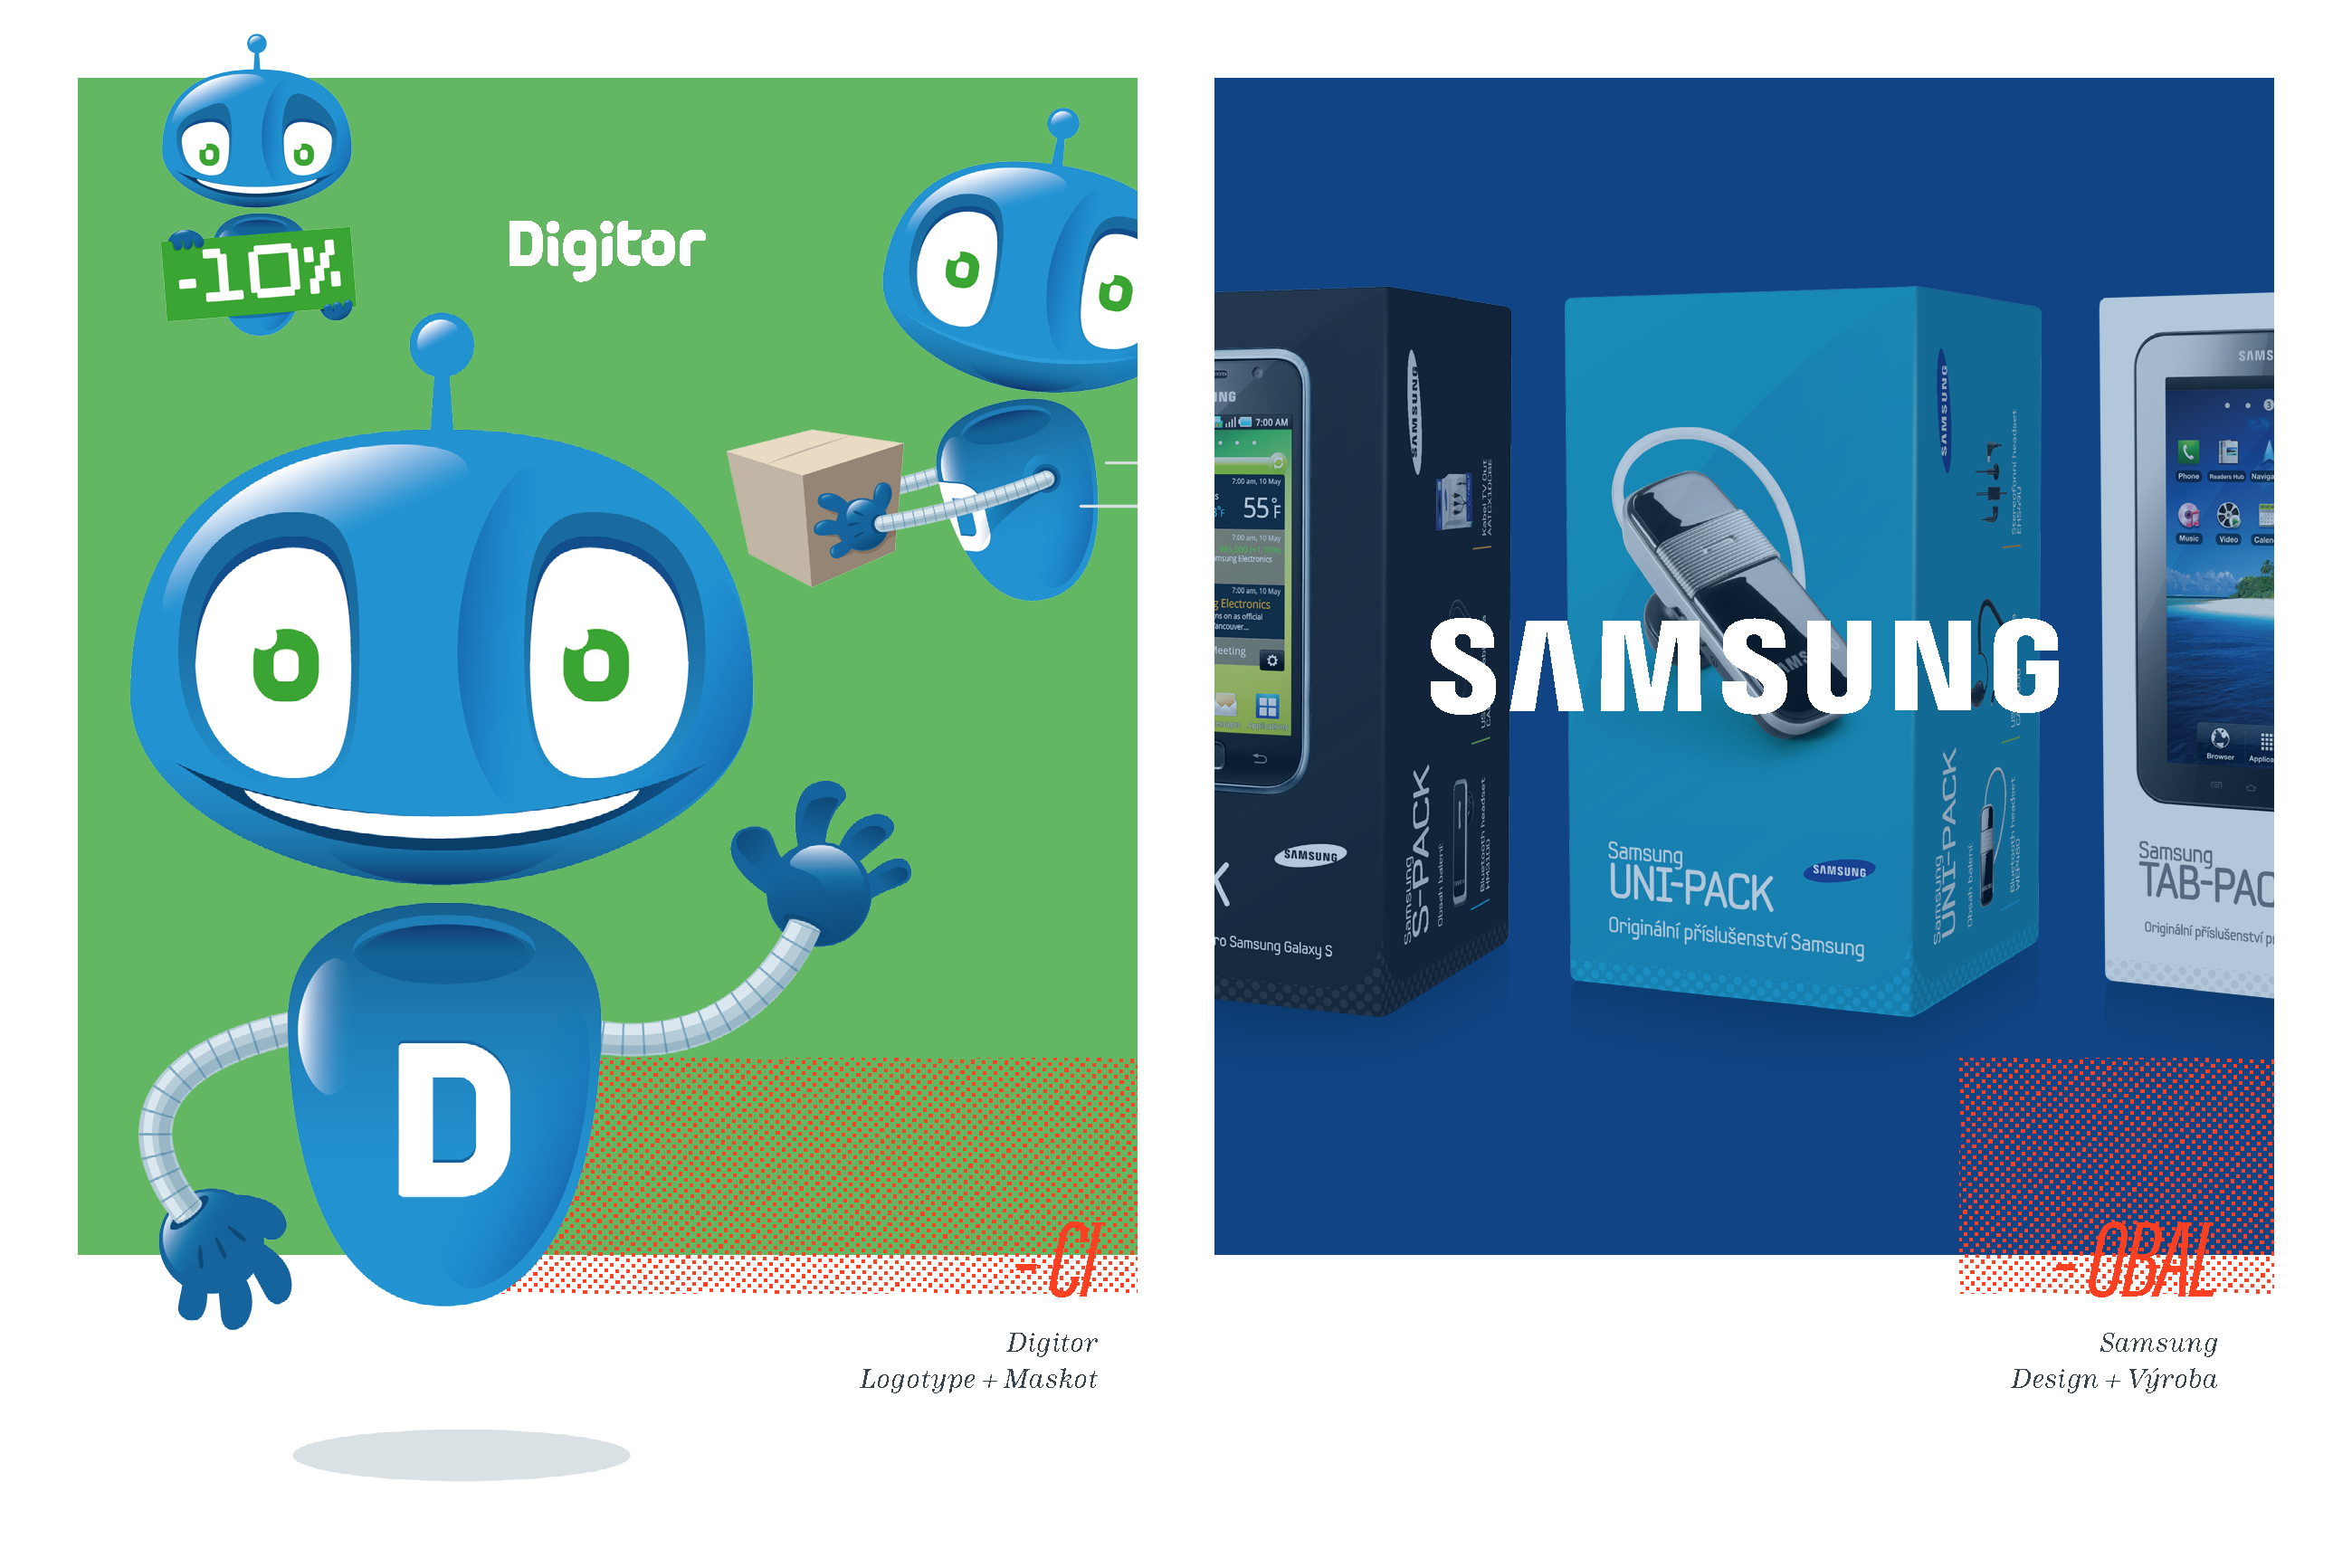 ci digitor samsung bundle.png